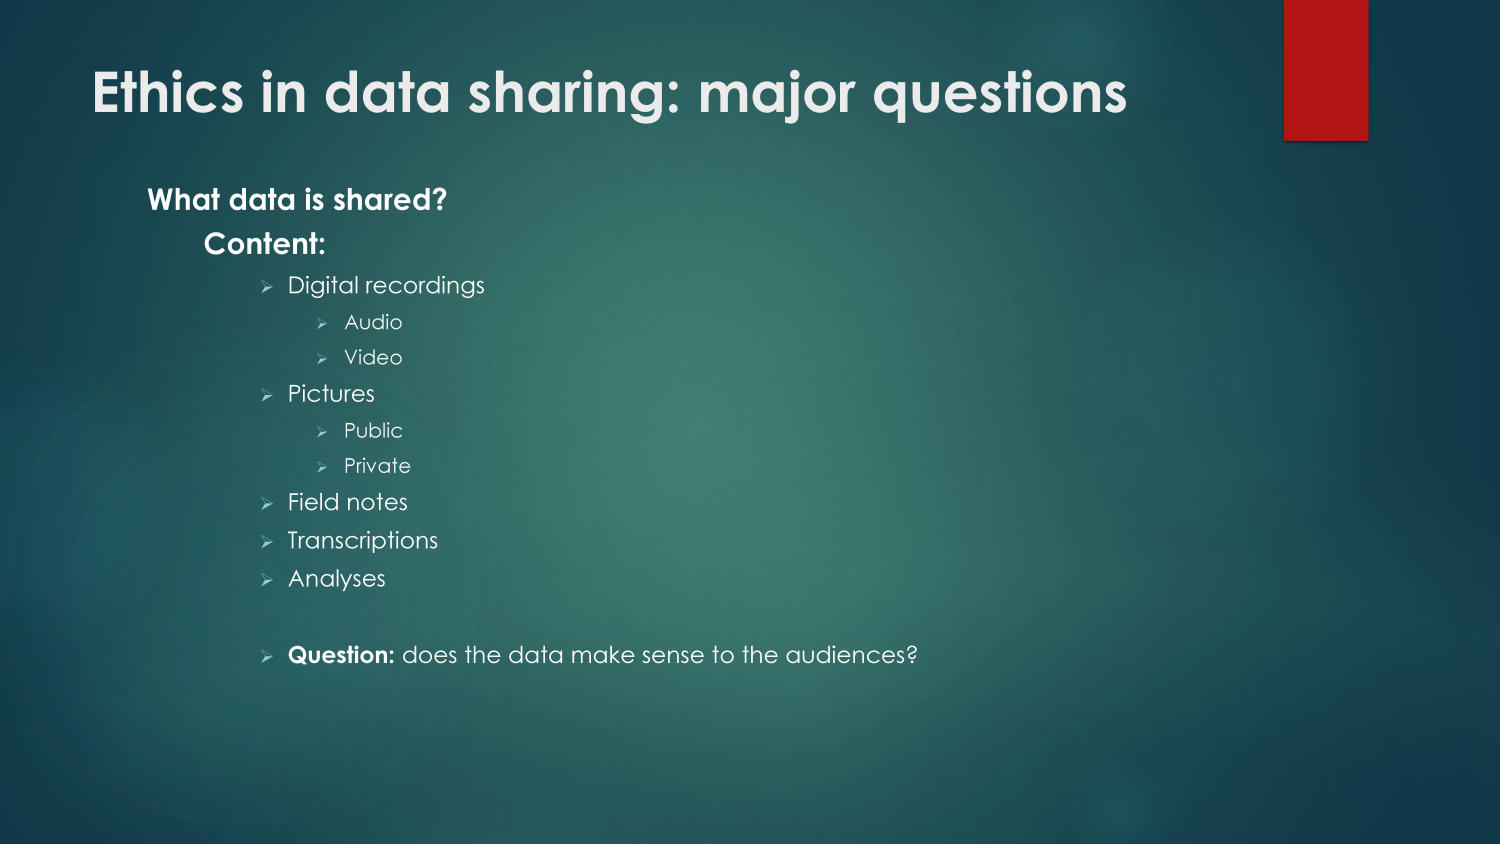 Ethics in Data Sharing                                                                                                      4